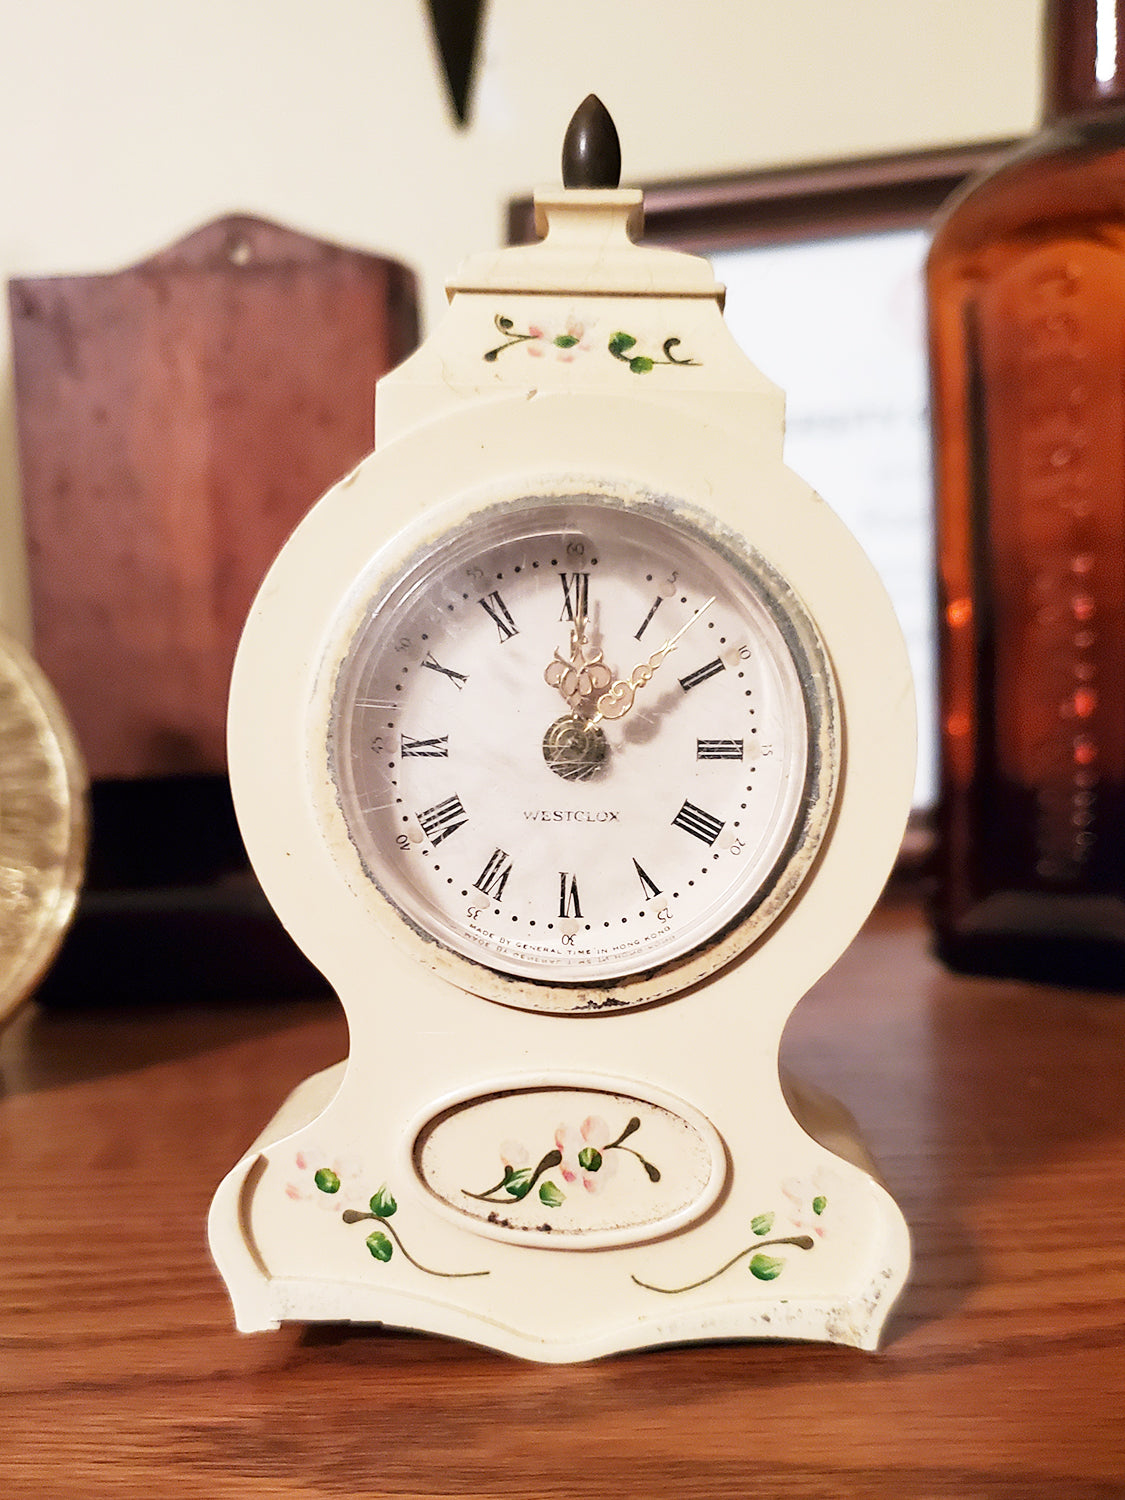 "Westclox 5"" Miniature Mantle Alarm Clock - Made By General Time"